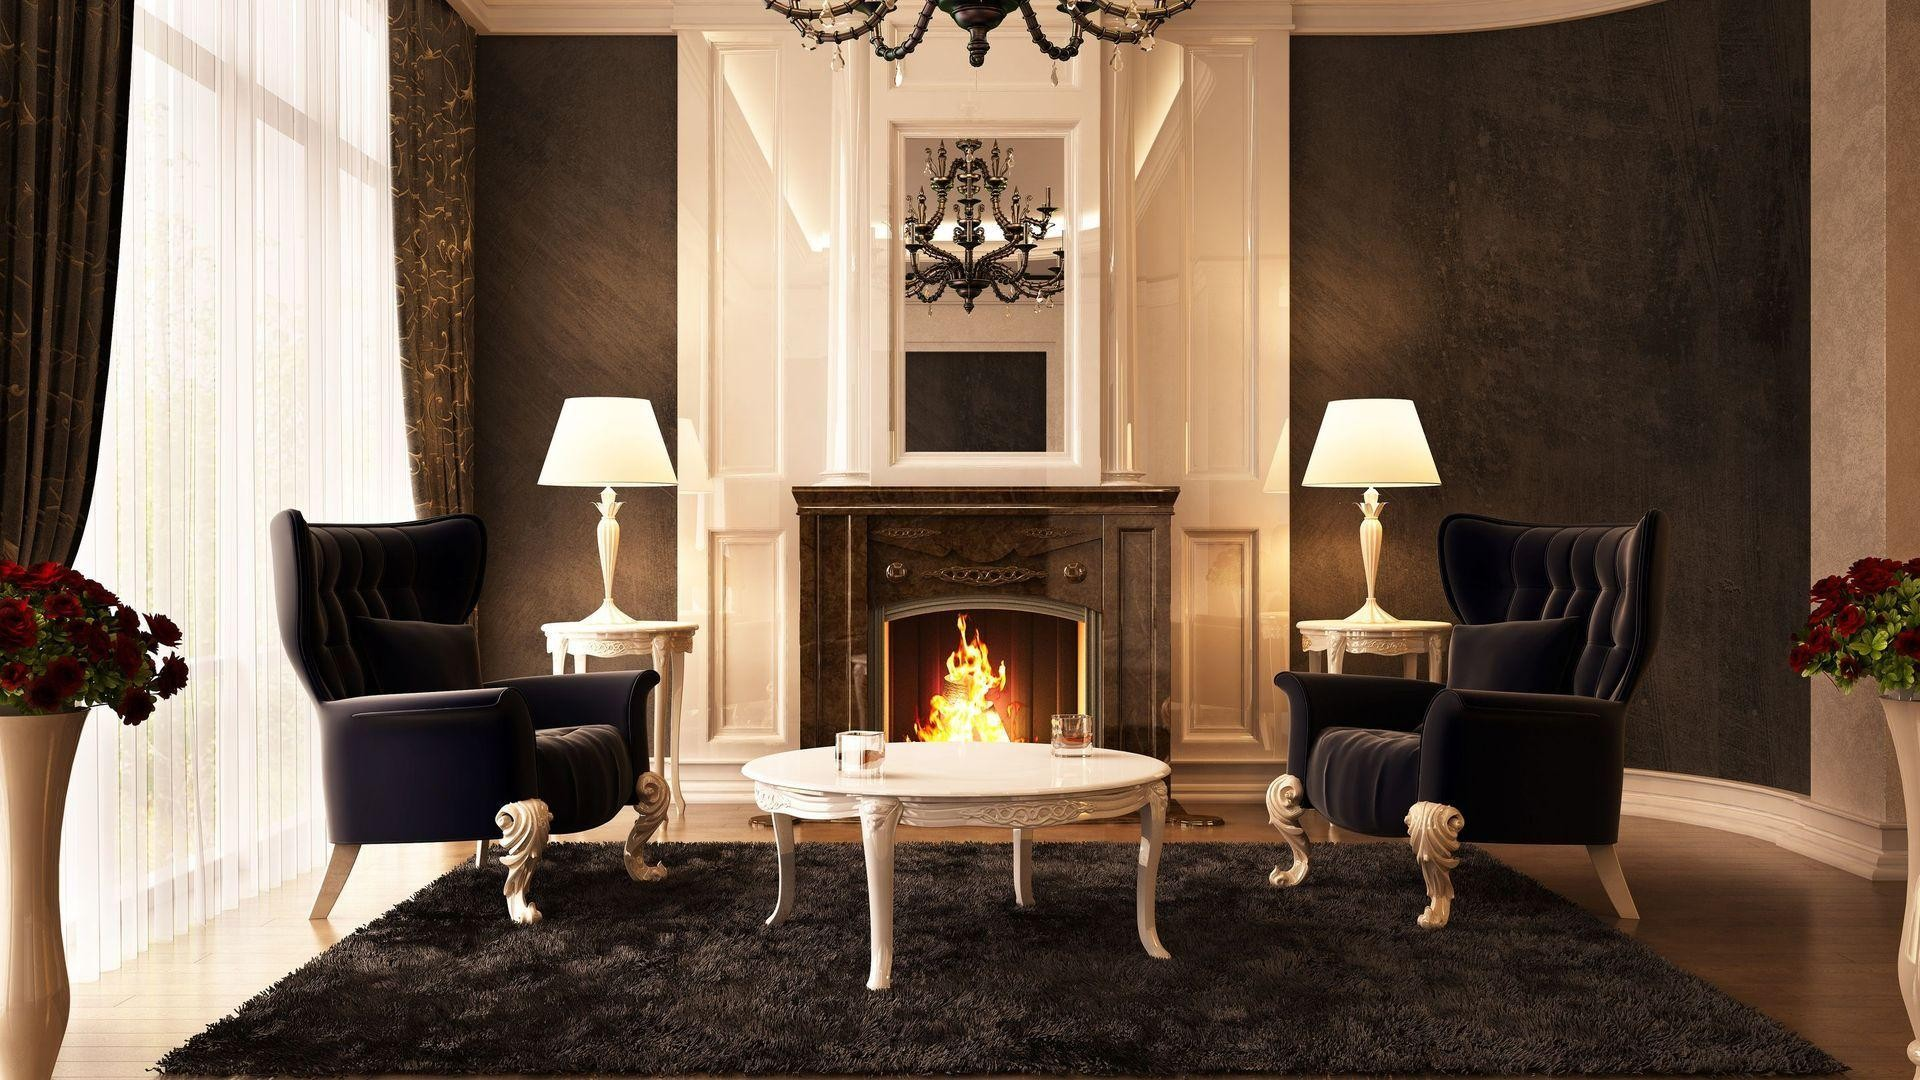 Fireplace Wallpaper 183 ① Download Free Stunning Hd